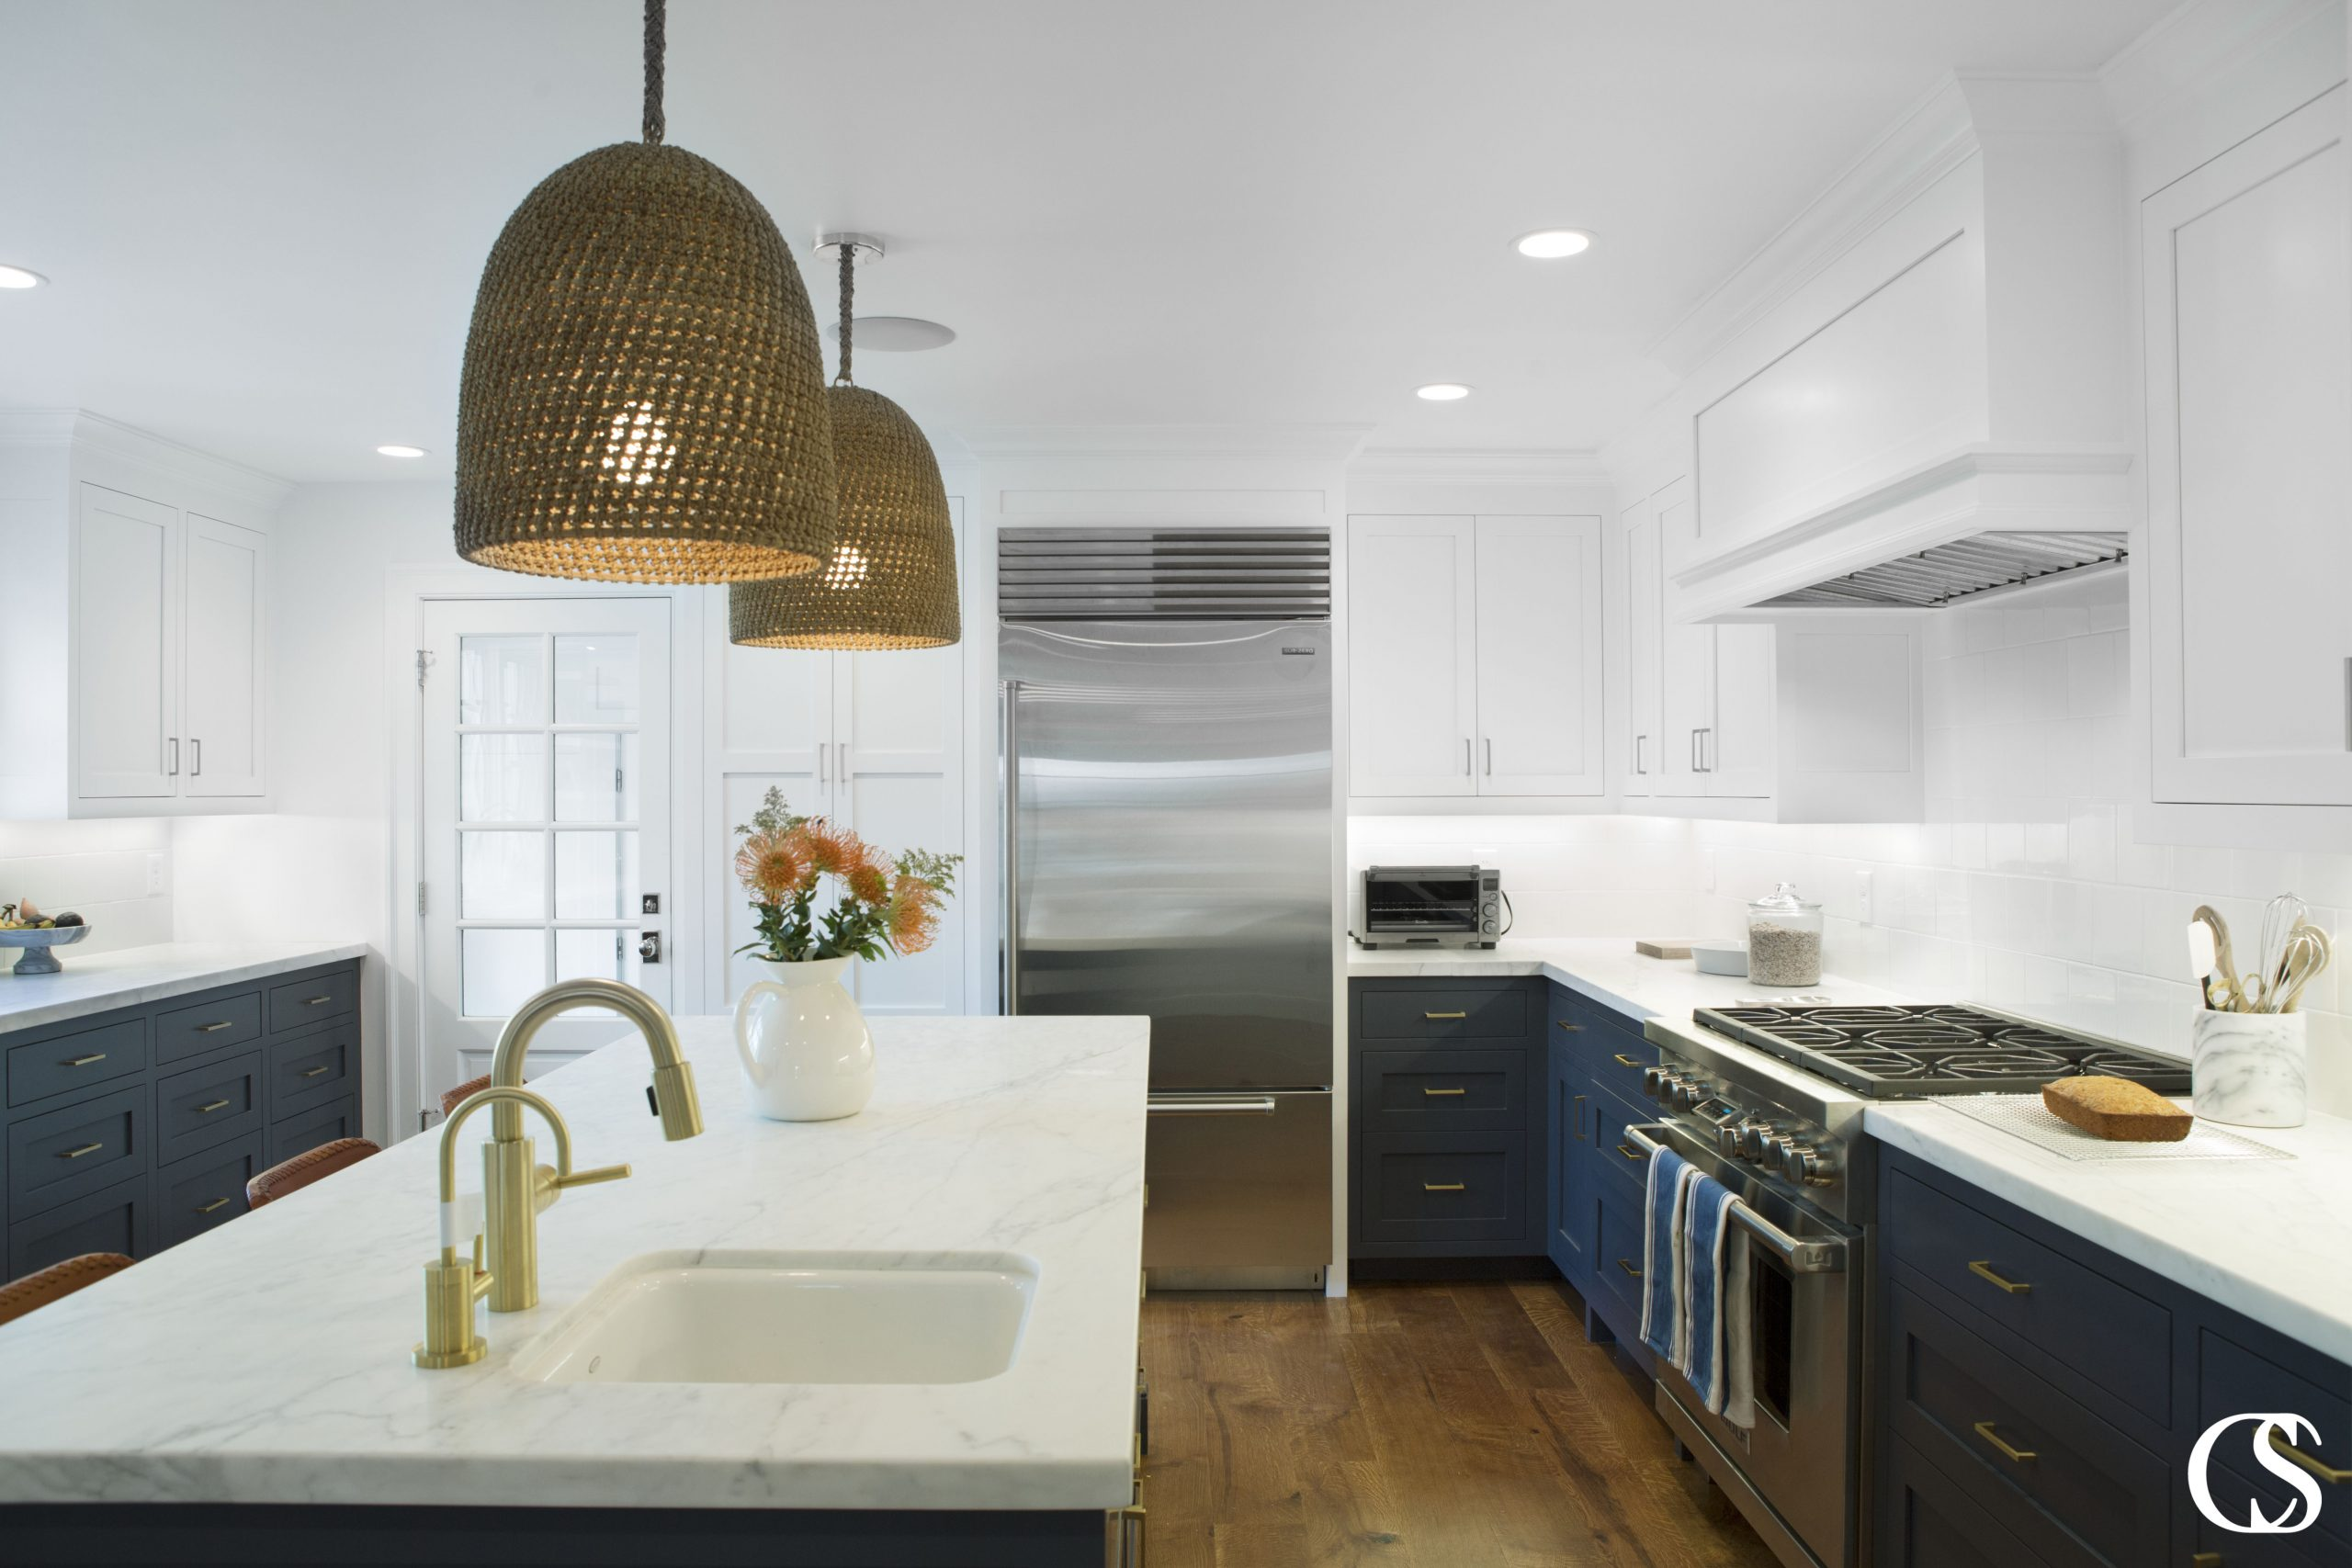 These custom kitchen cabinets combine shaker style doors and flat slab drawers to stick with a clean line design without falling into a boring trap.